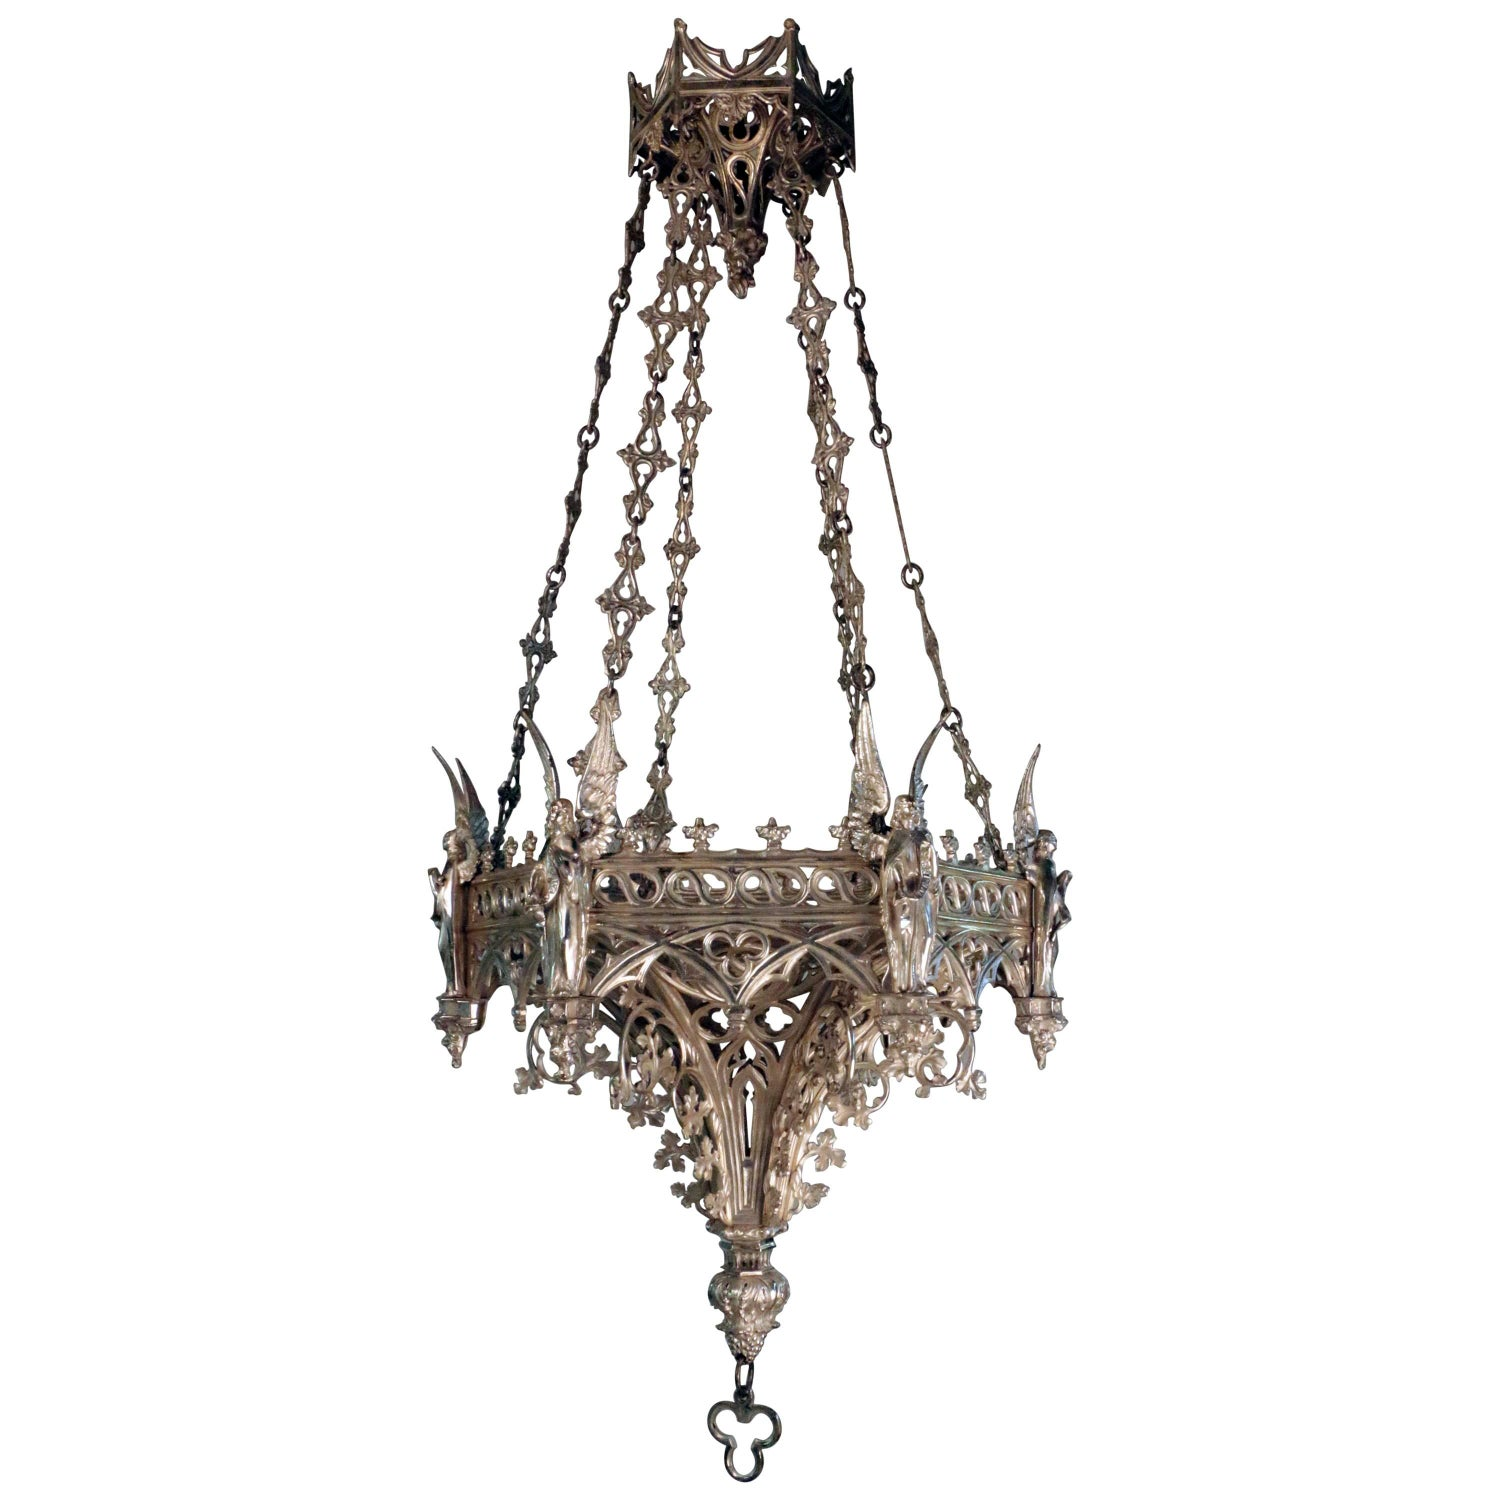 Gothic revival lighting light fixtures 88 for sale at 1stdibs antique french neo gothic silvered bronze hanging fixture arubaitofo Gallery